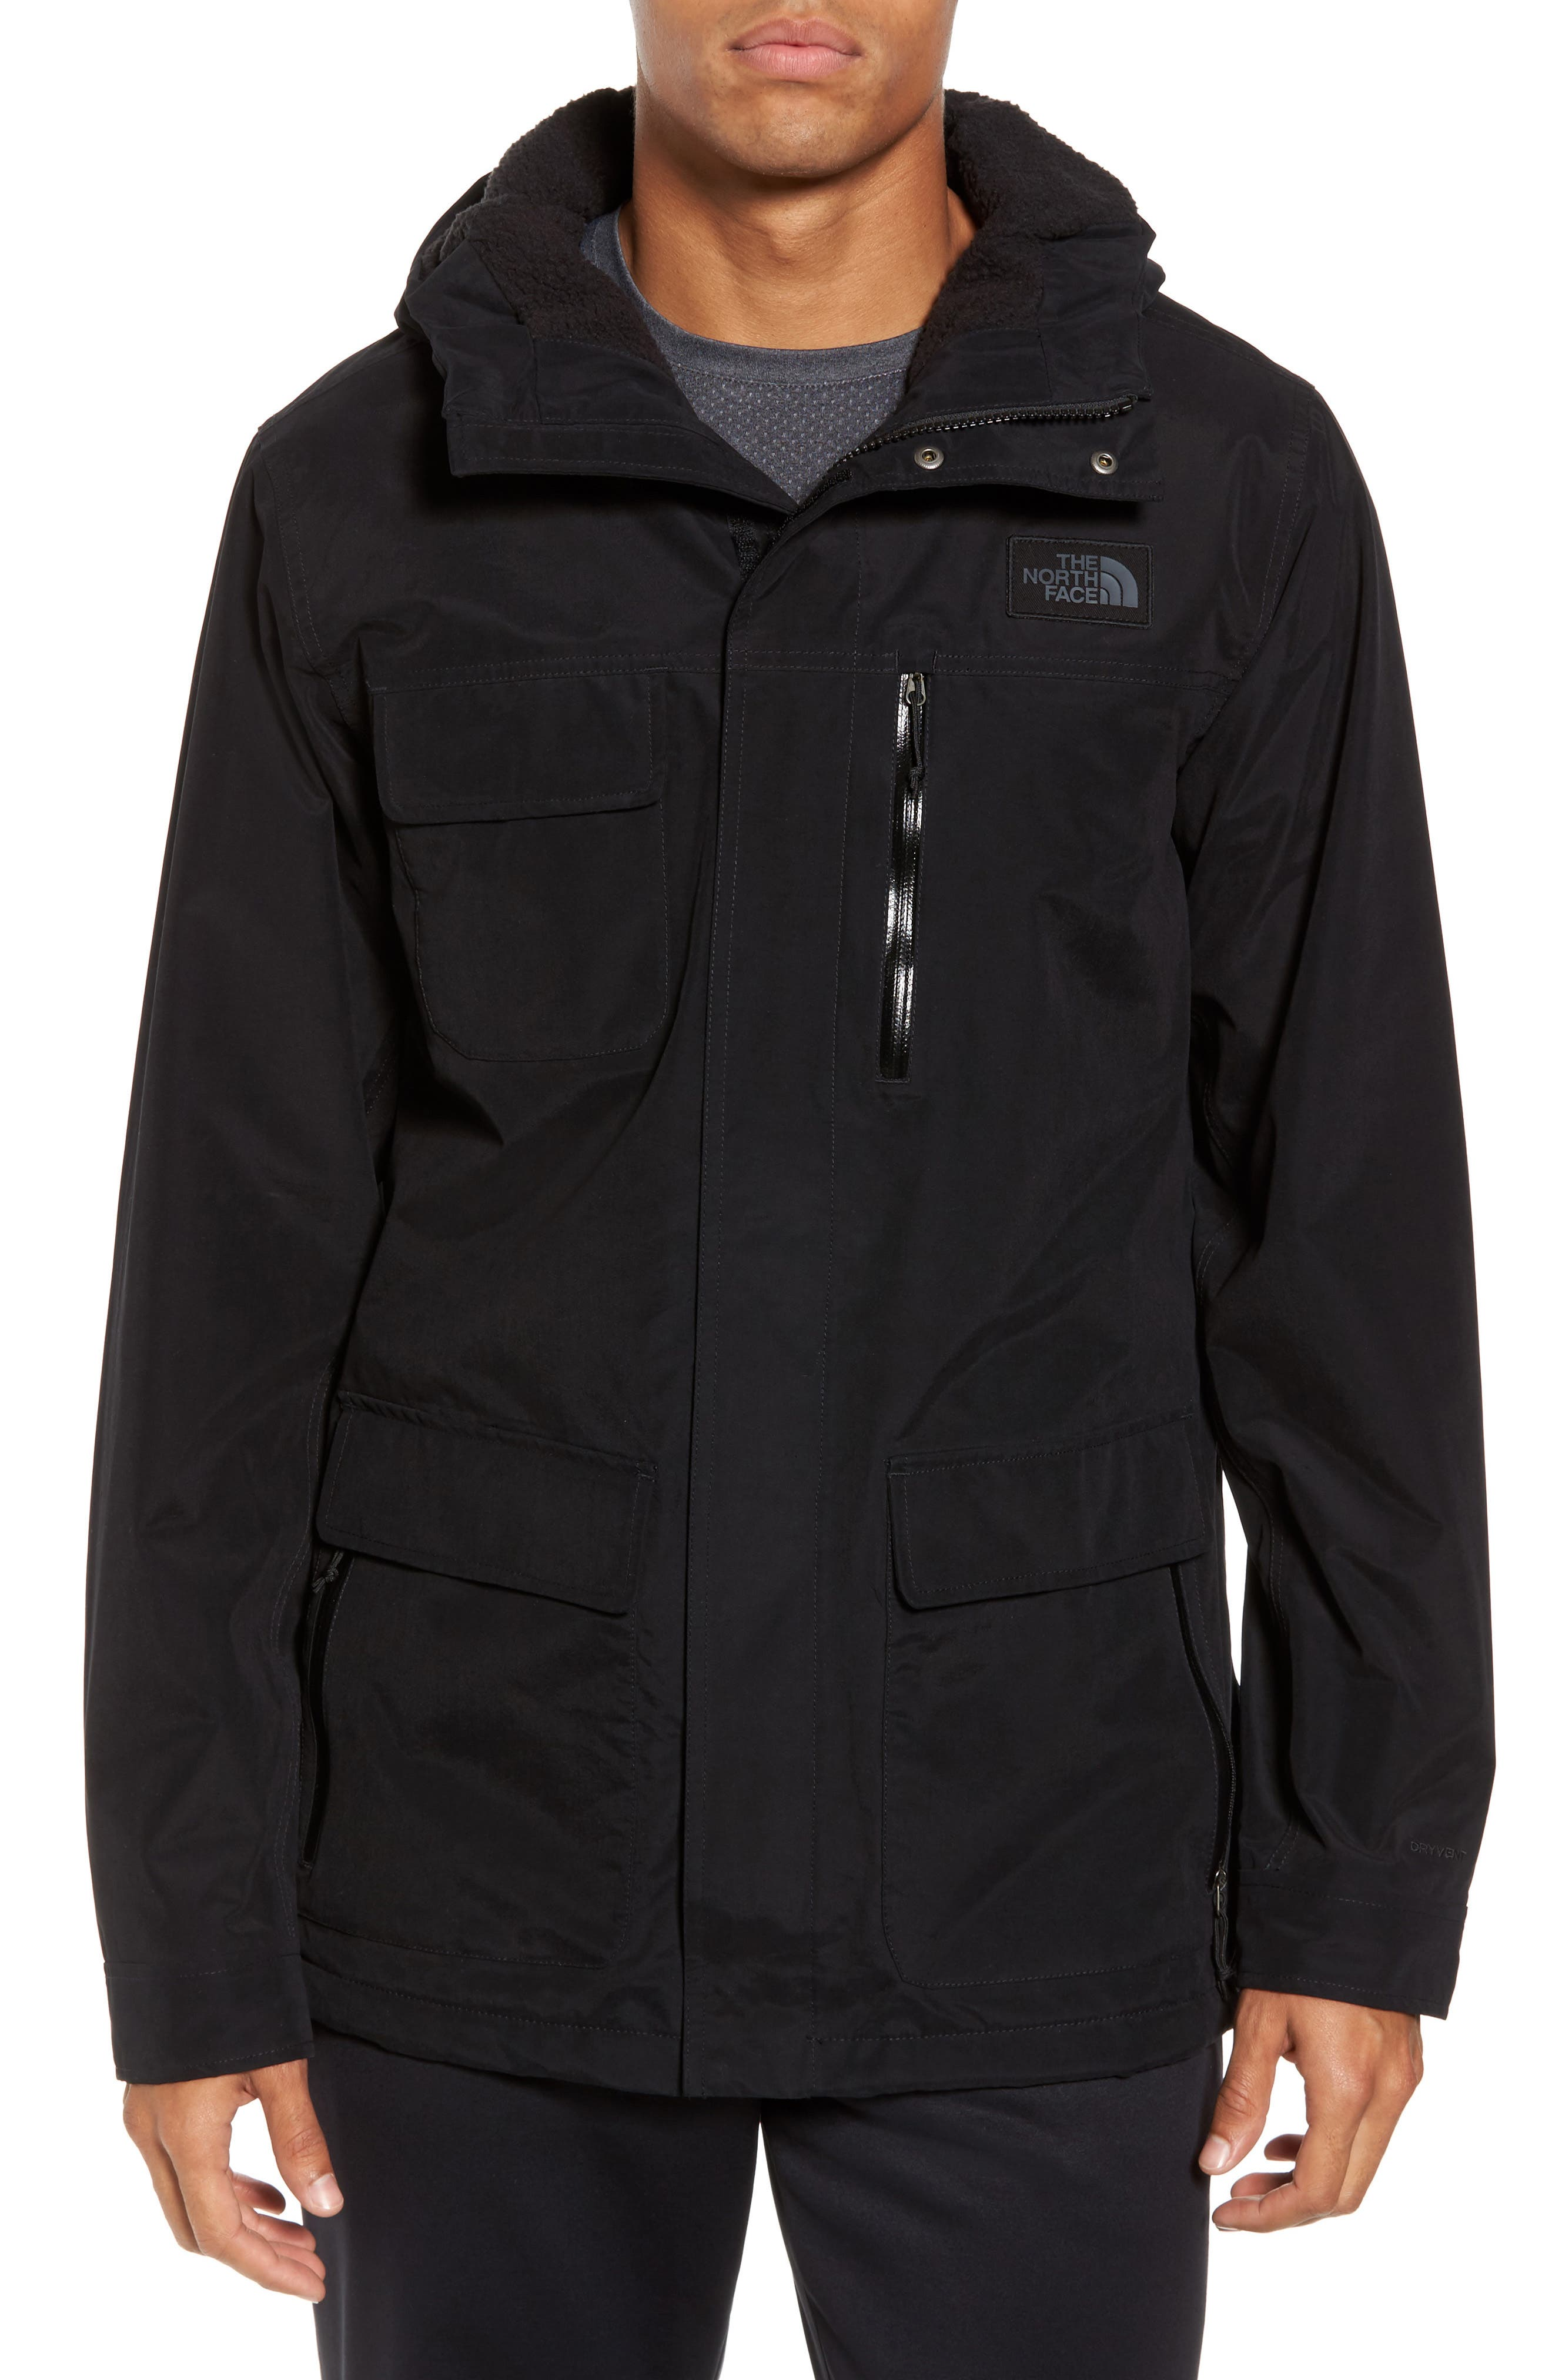 The North Face Cuchillo Waterproof Parka